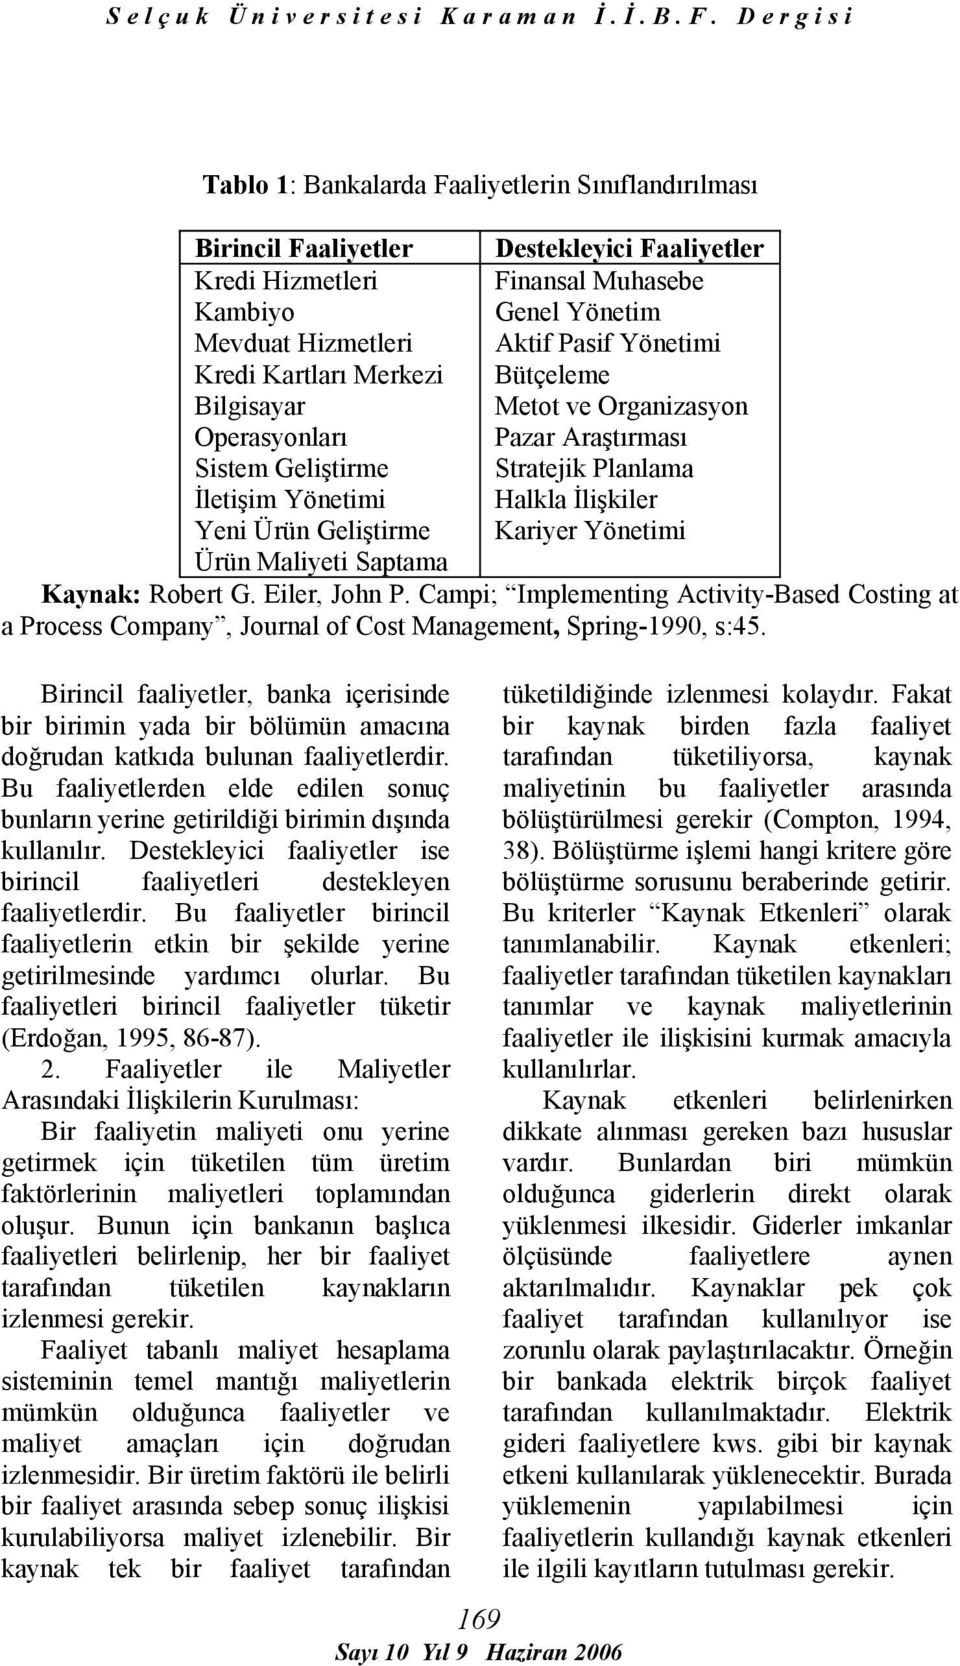 Yönetimi Ürün Maliyeti Saptama Kaynak: Robert G. Eiler, John P. Campi; Implementing Activity-Based Costing at a Process Company, Journal of Cost Management, Spring-1990, s:45.